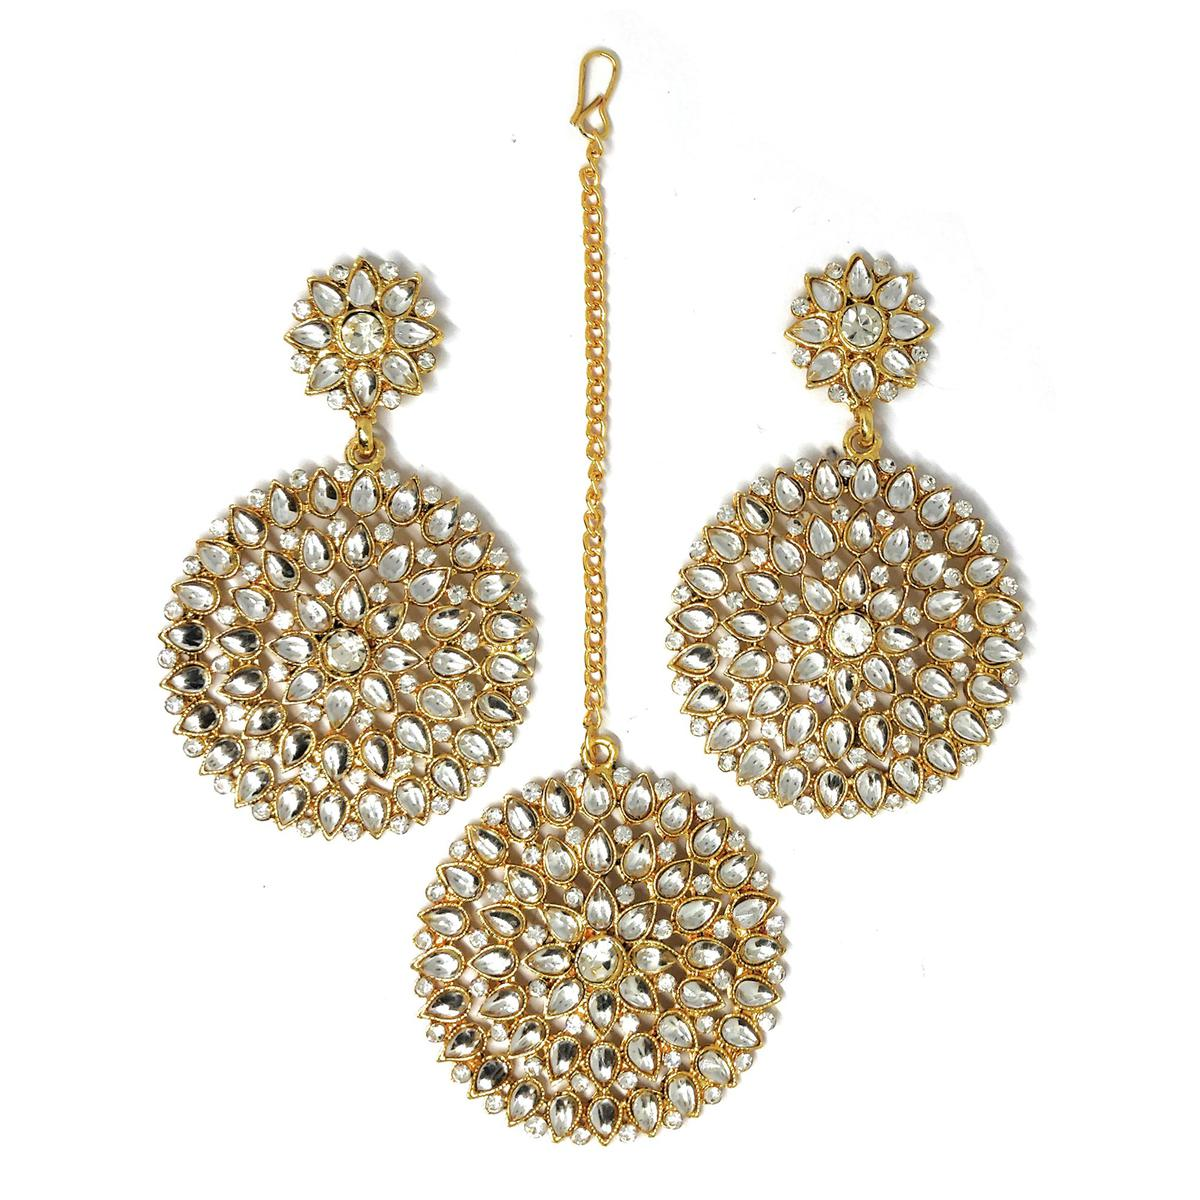 ZaffreCollections - Beautiful Round Silver Maang Tikka with Earrings Set for Women and Girls